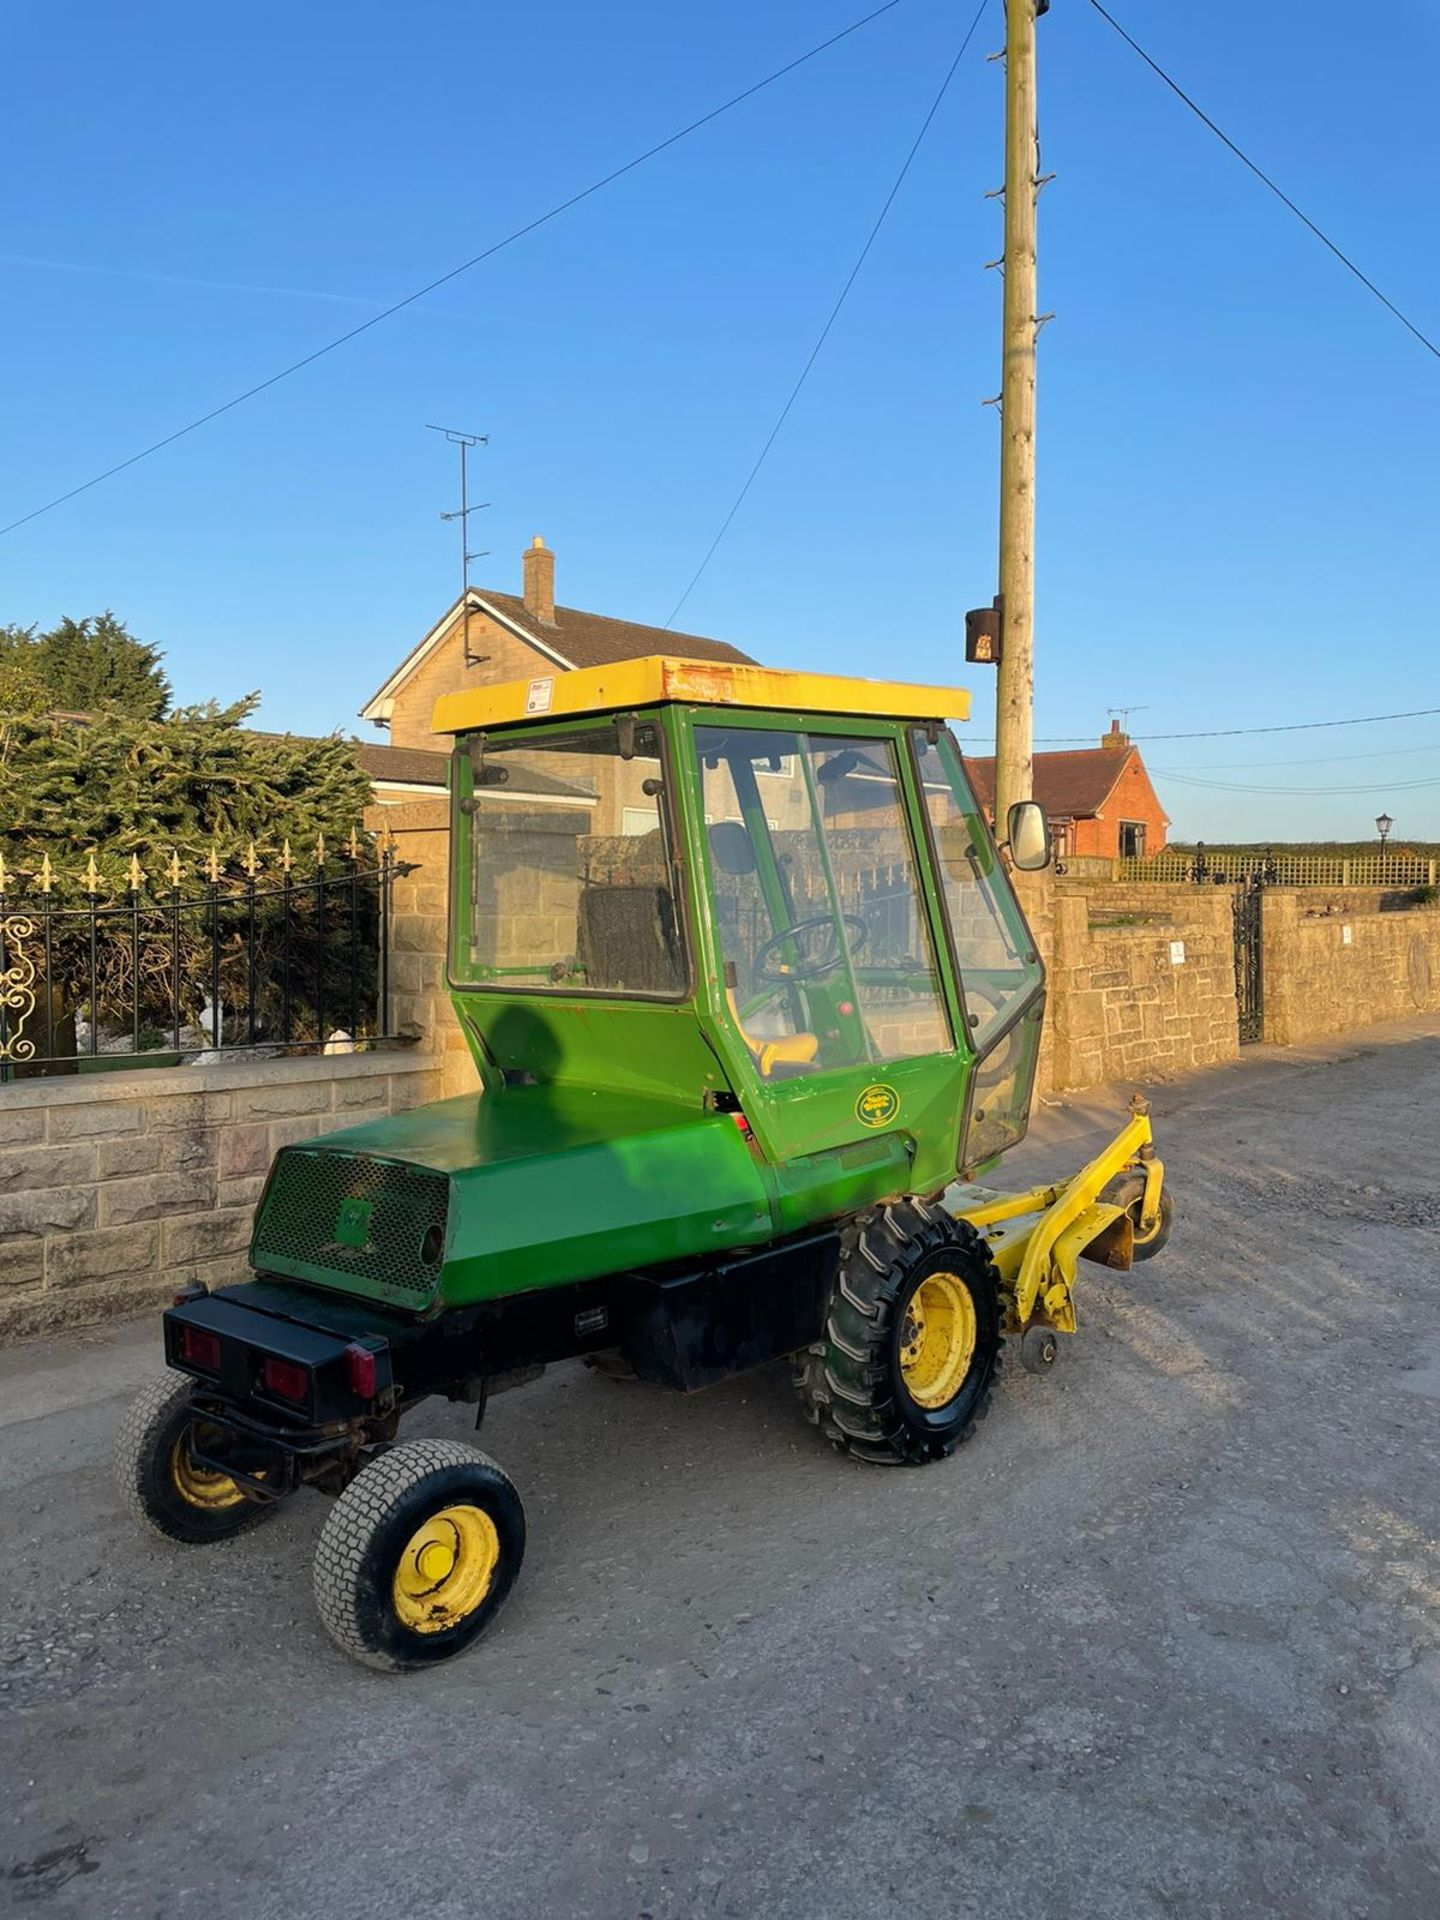 JOHN DEERE OUT FRONT RIDE ON LAWN MOWER, FULL GLASS CAB, ONLY 1603 HOURS *PLUS VAT* - Image 2 of 5